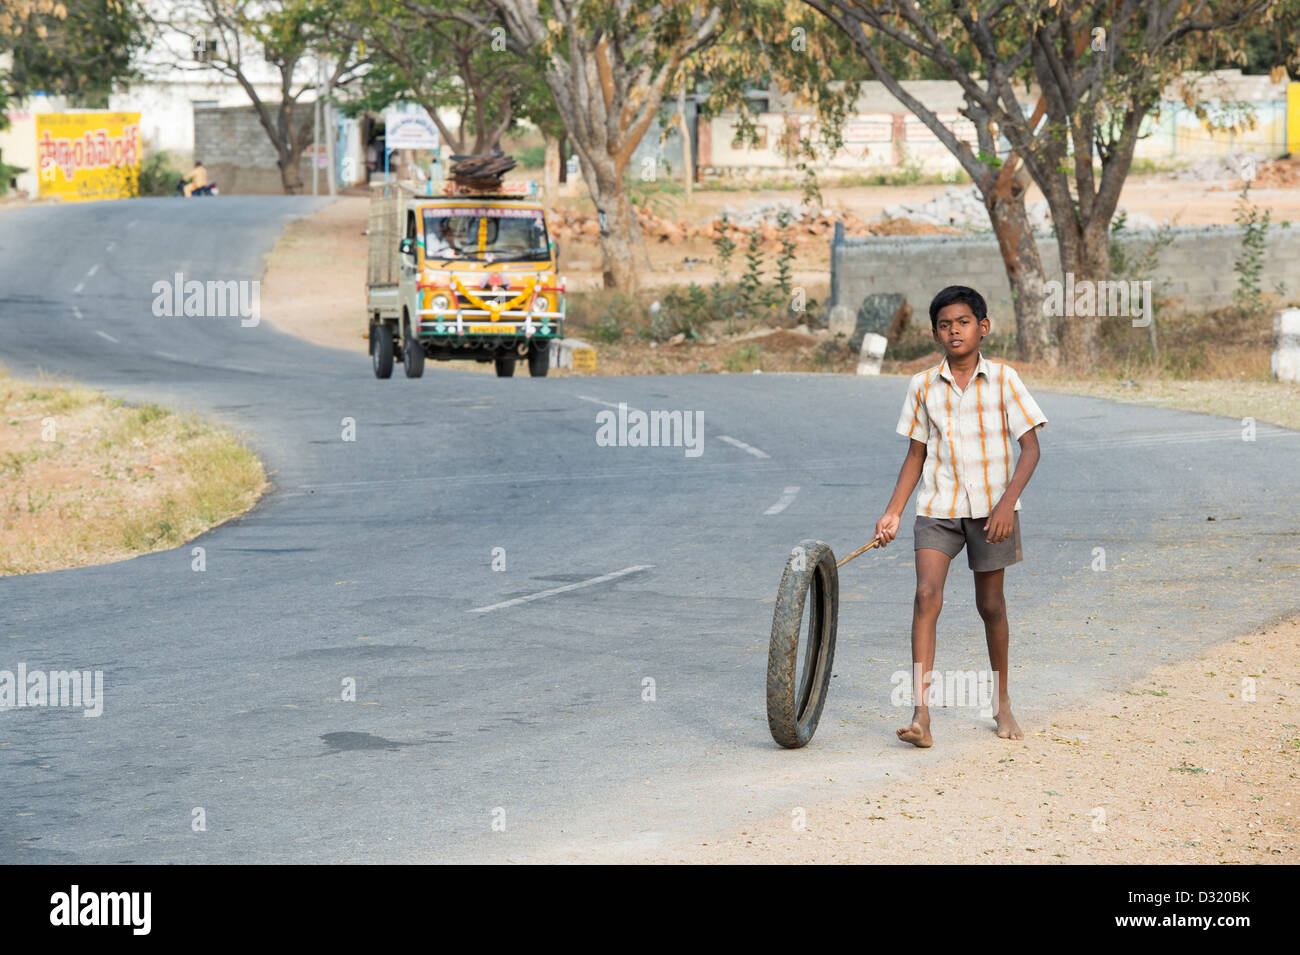 Boy Playing Tyre Tire Stock Photos & Boy Playing Tyre Tire Stock ...